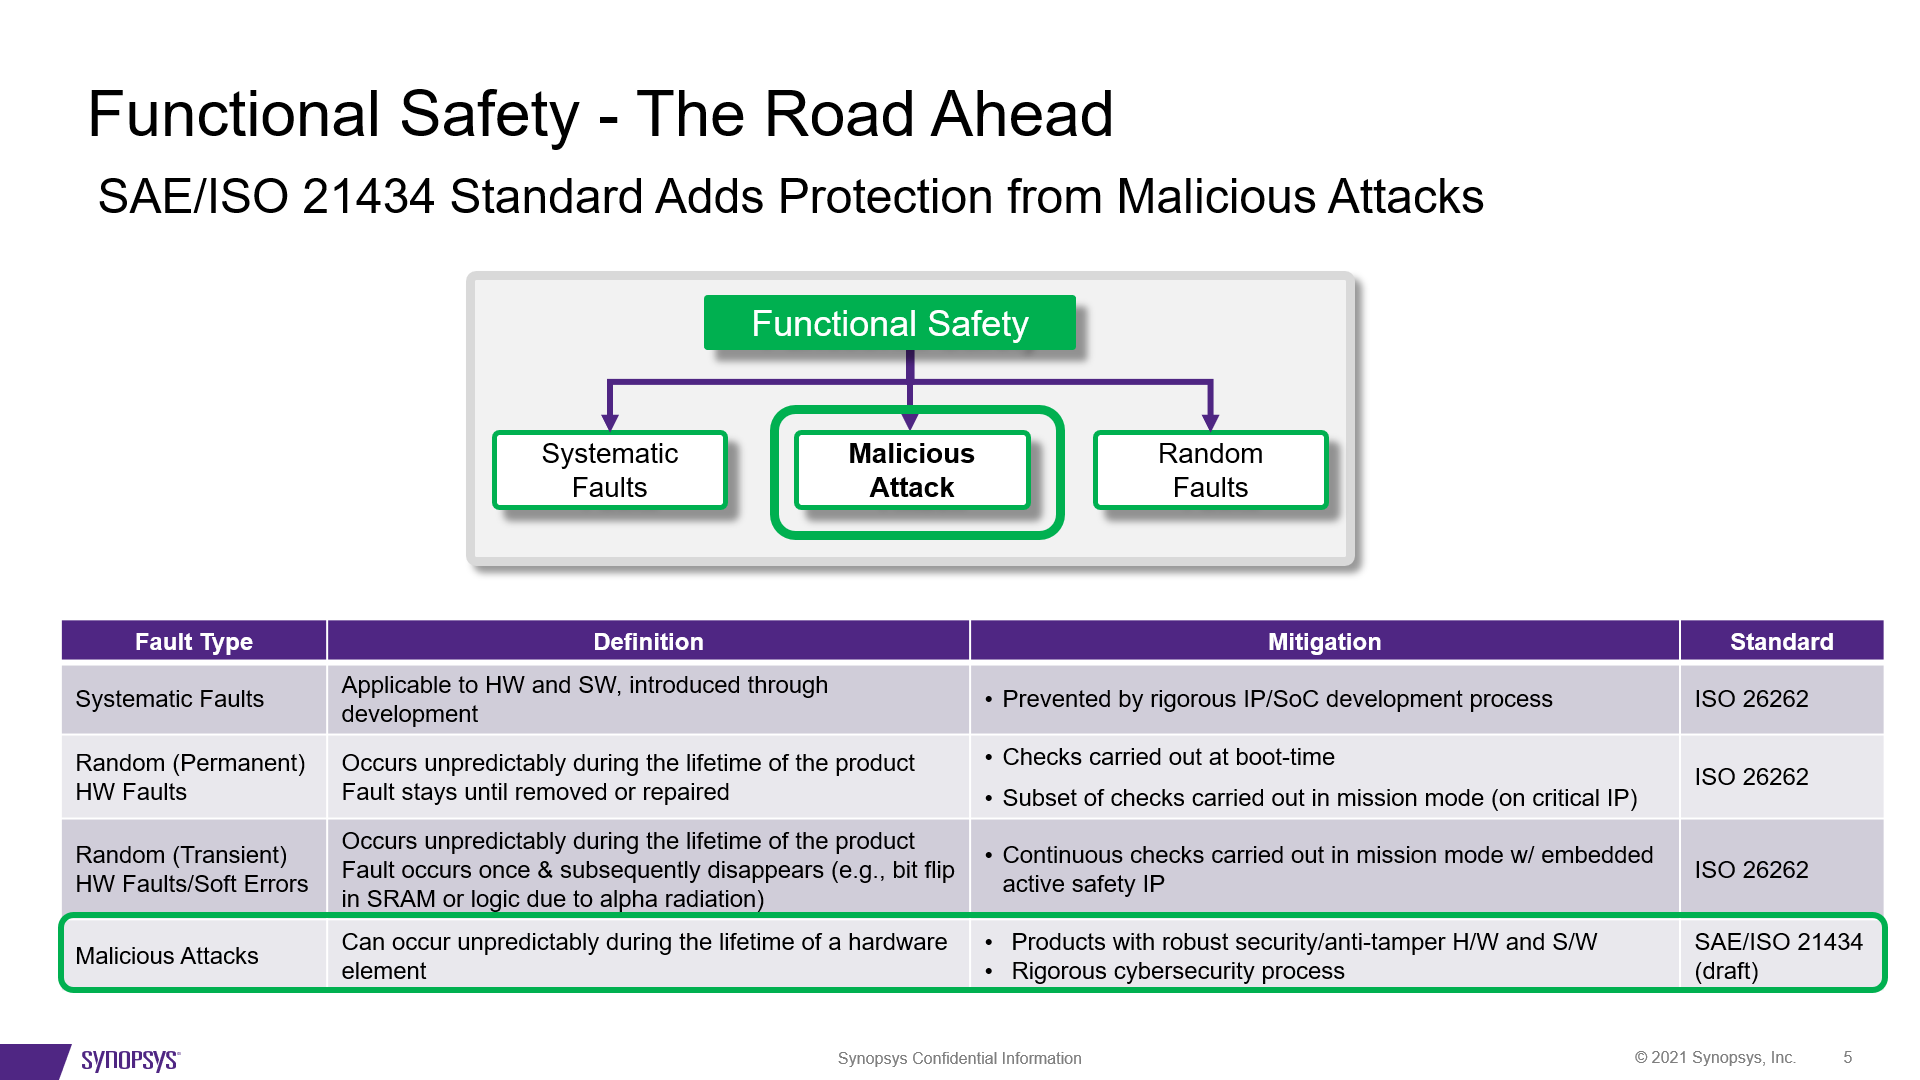 Functional Safety The Road Ahead